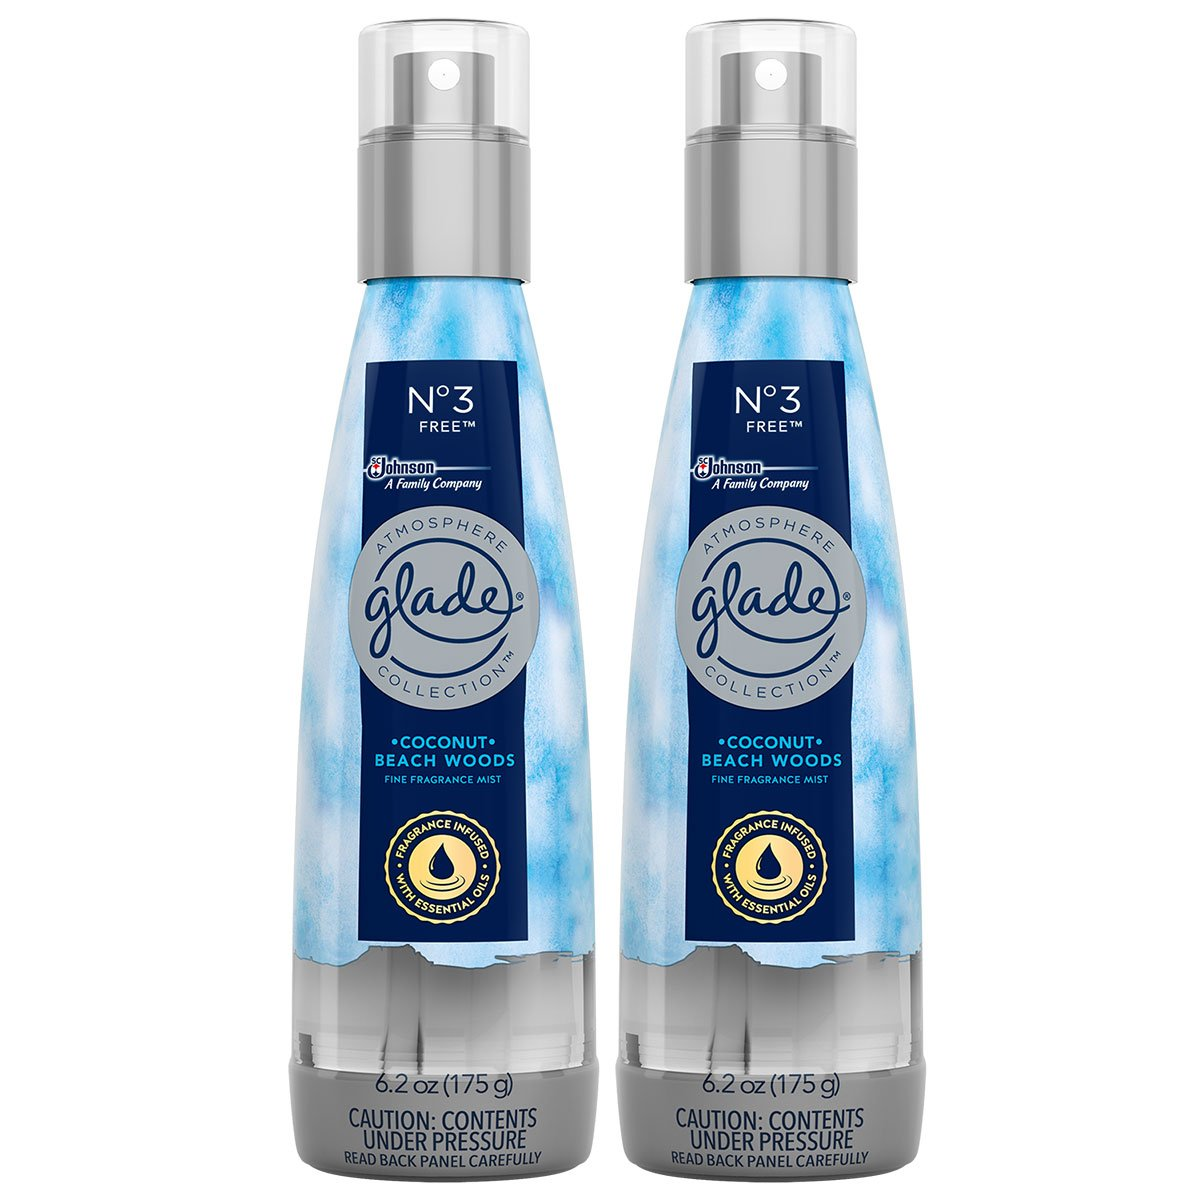 Glade Fine Fragrance Mist NO 3 Free Coconut and Beach Woods, 6.2 OZ